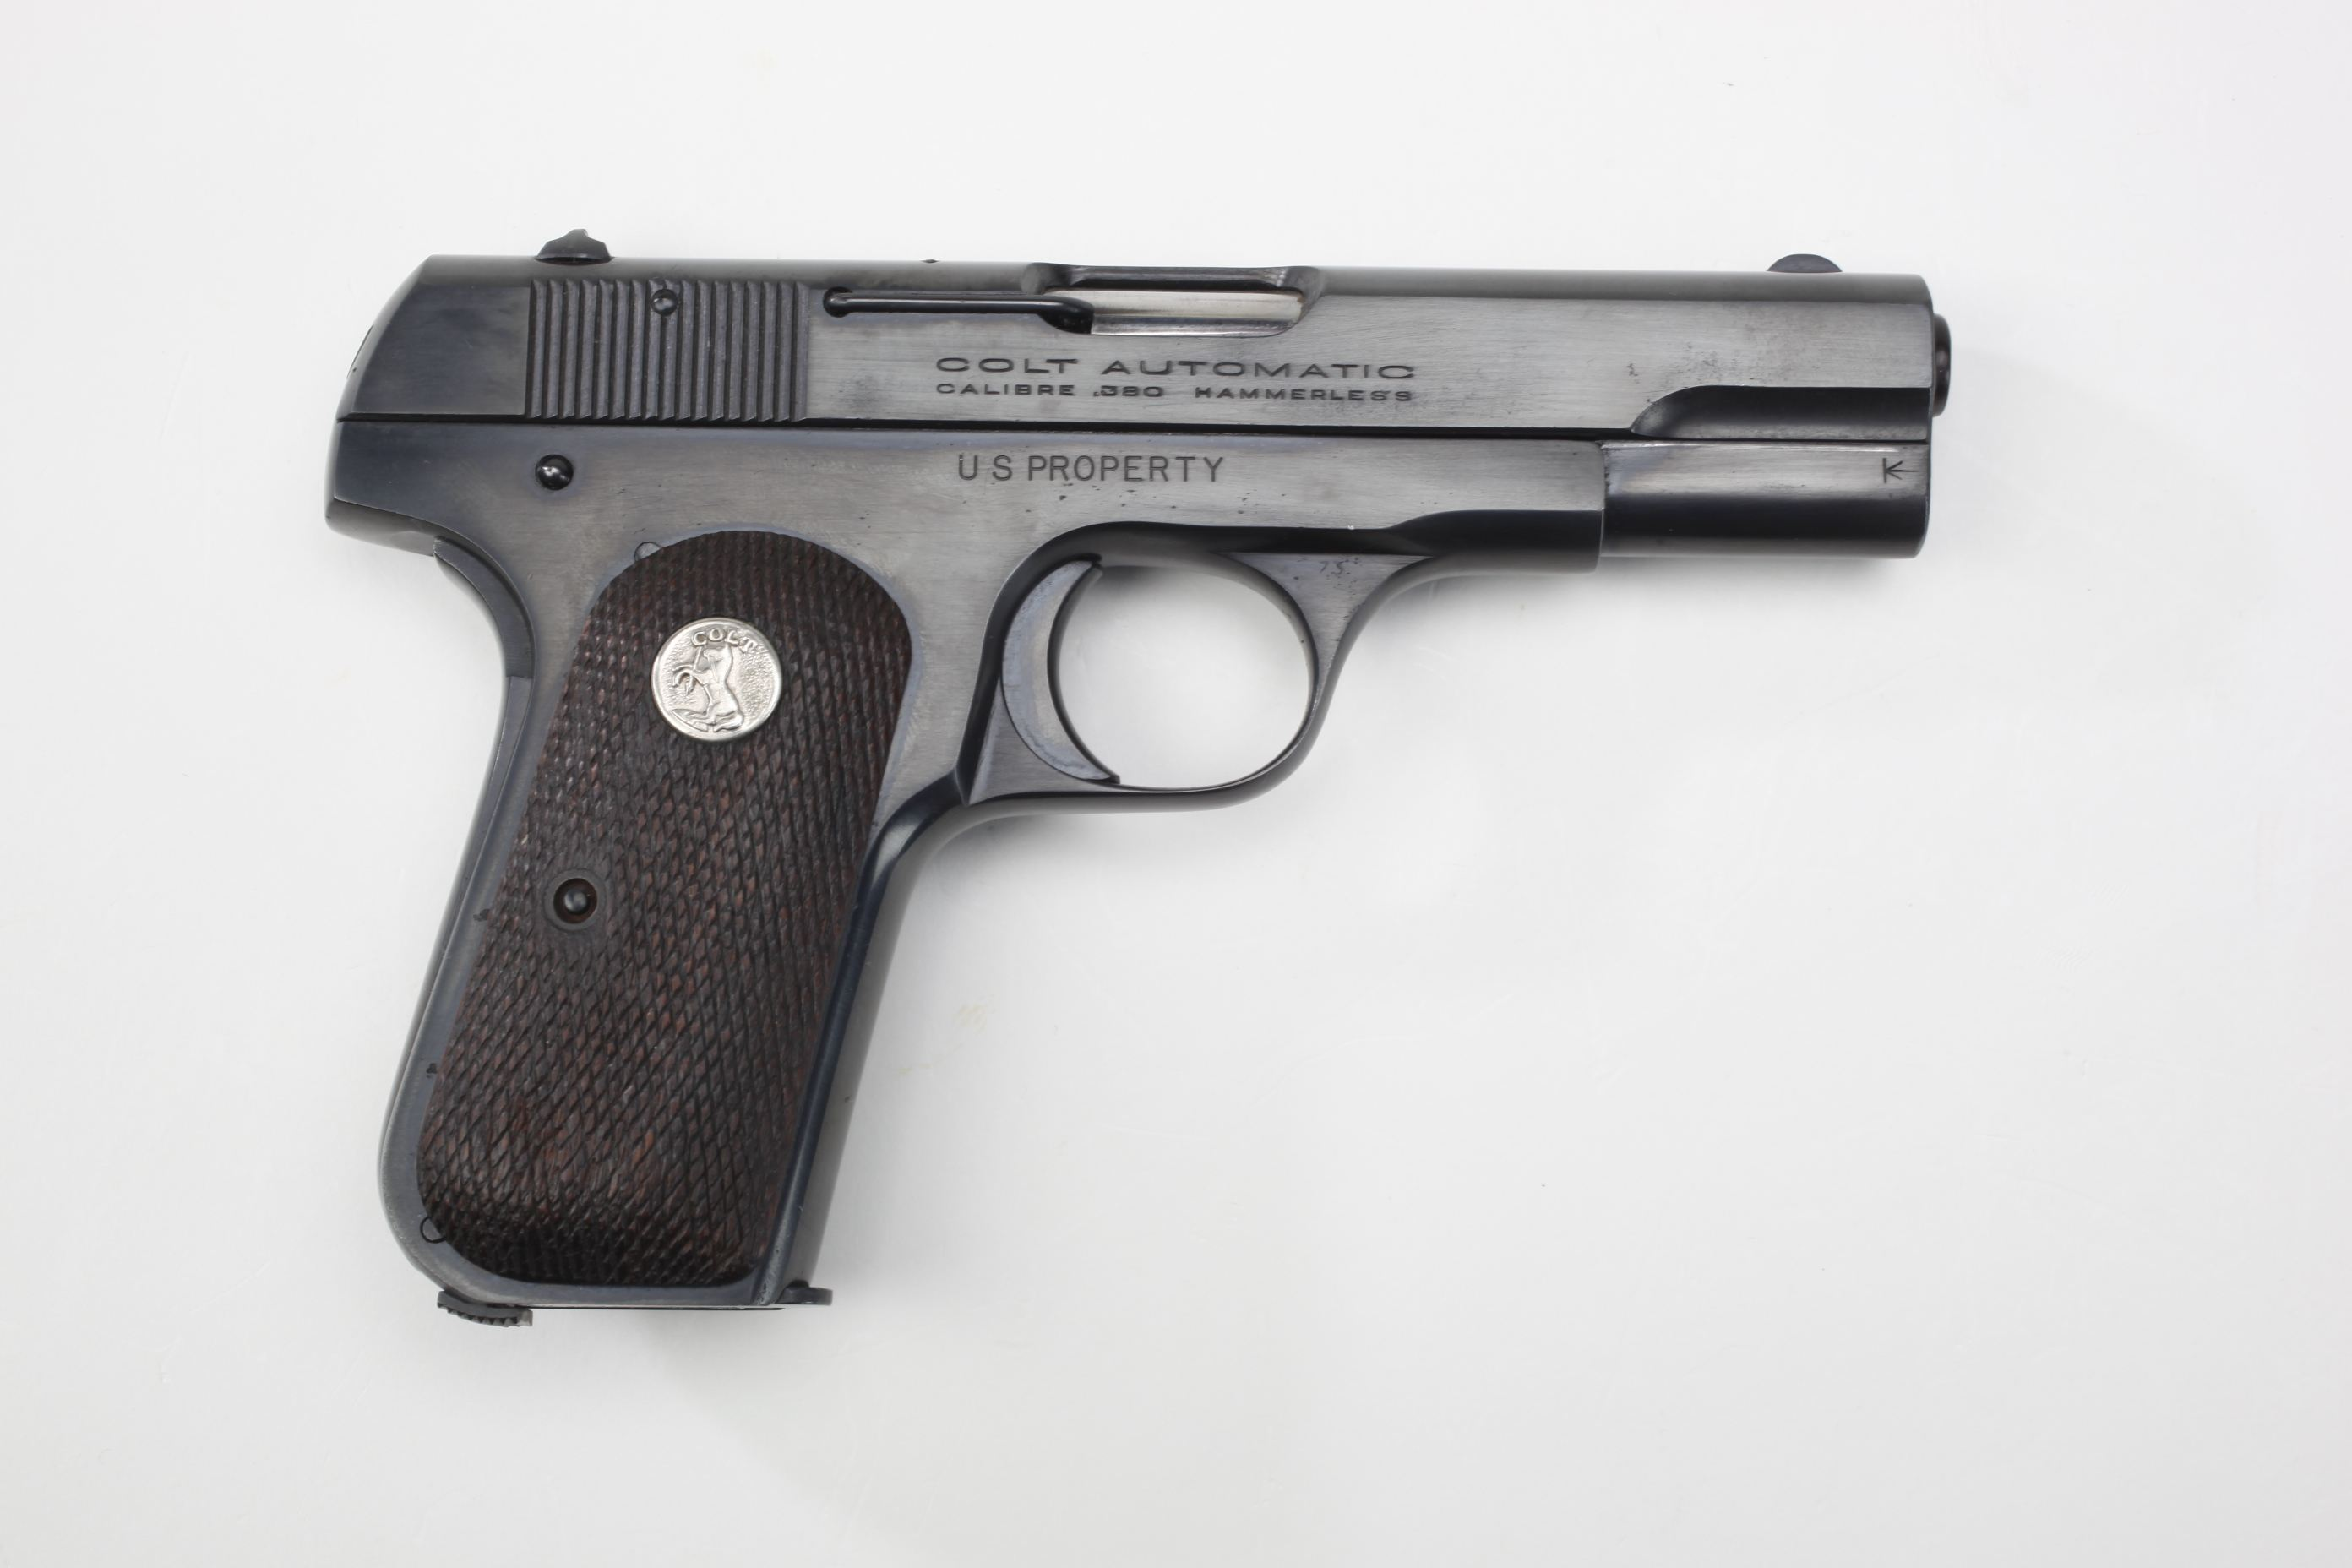 General Isaac D. White's U.S./Colt M1908 Semi-Automatic General Officer's Pistol